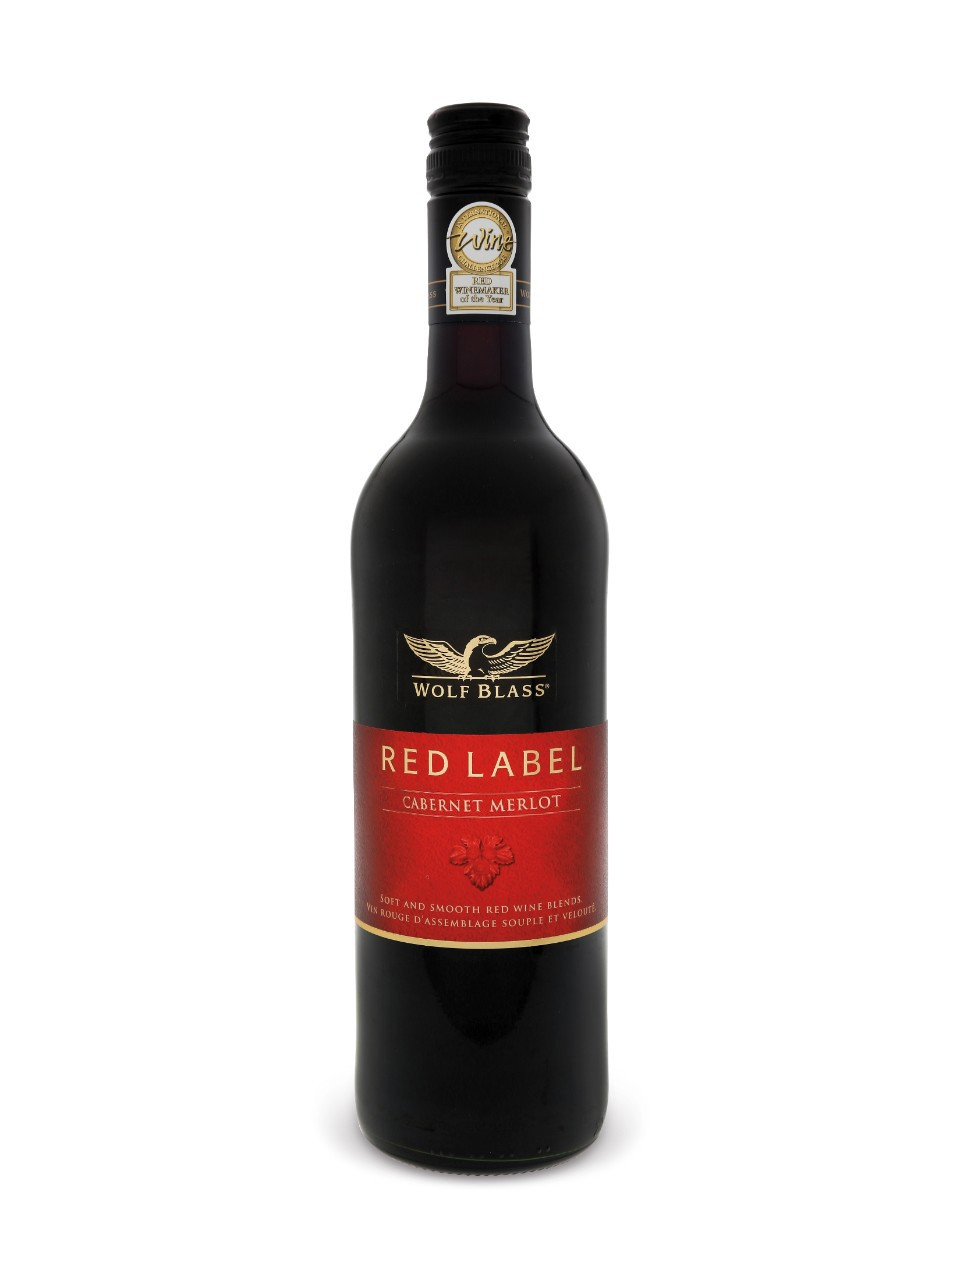 Wolf Blass Red Label Cabernet Merlot from LCBO